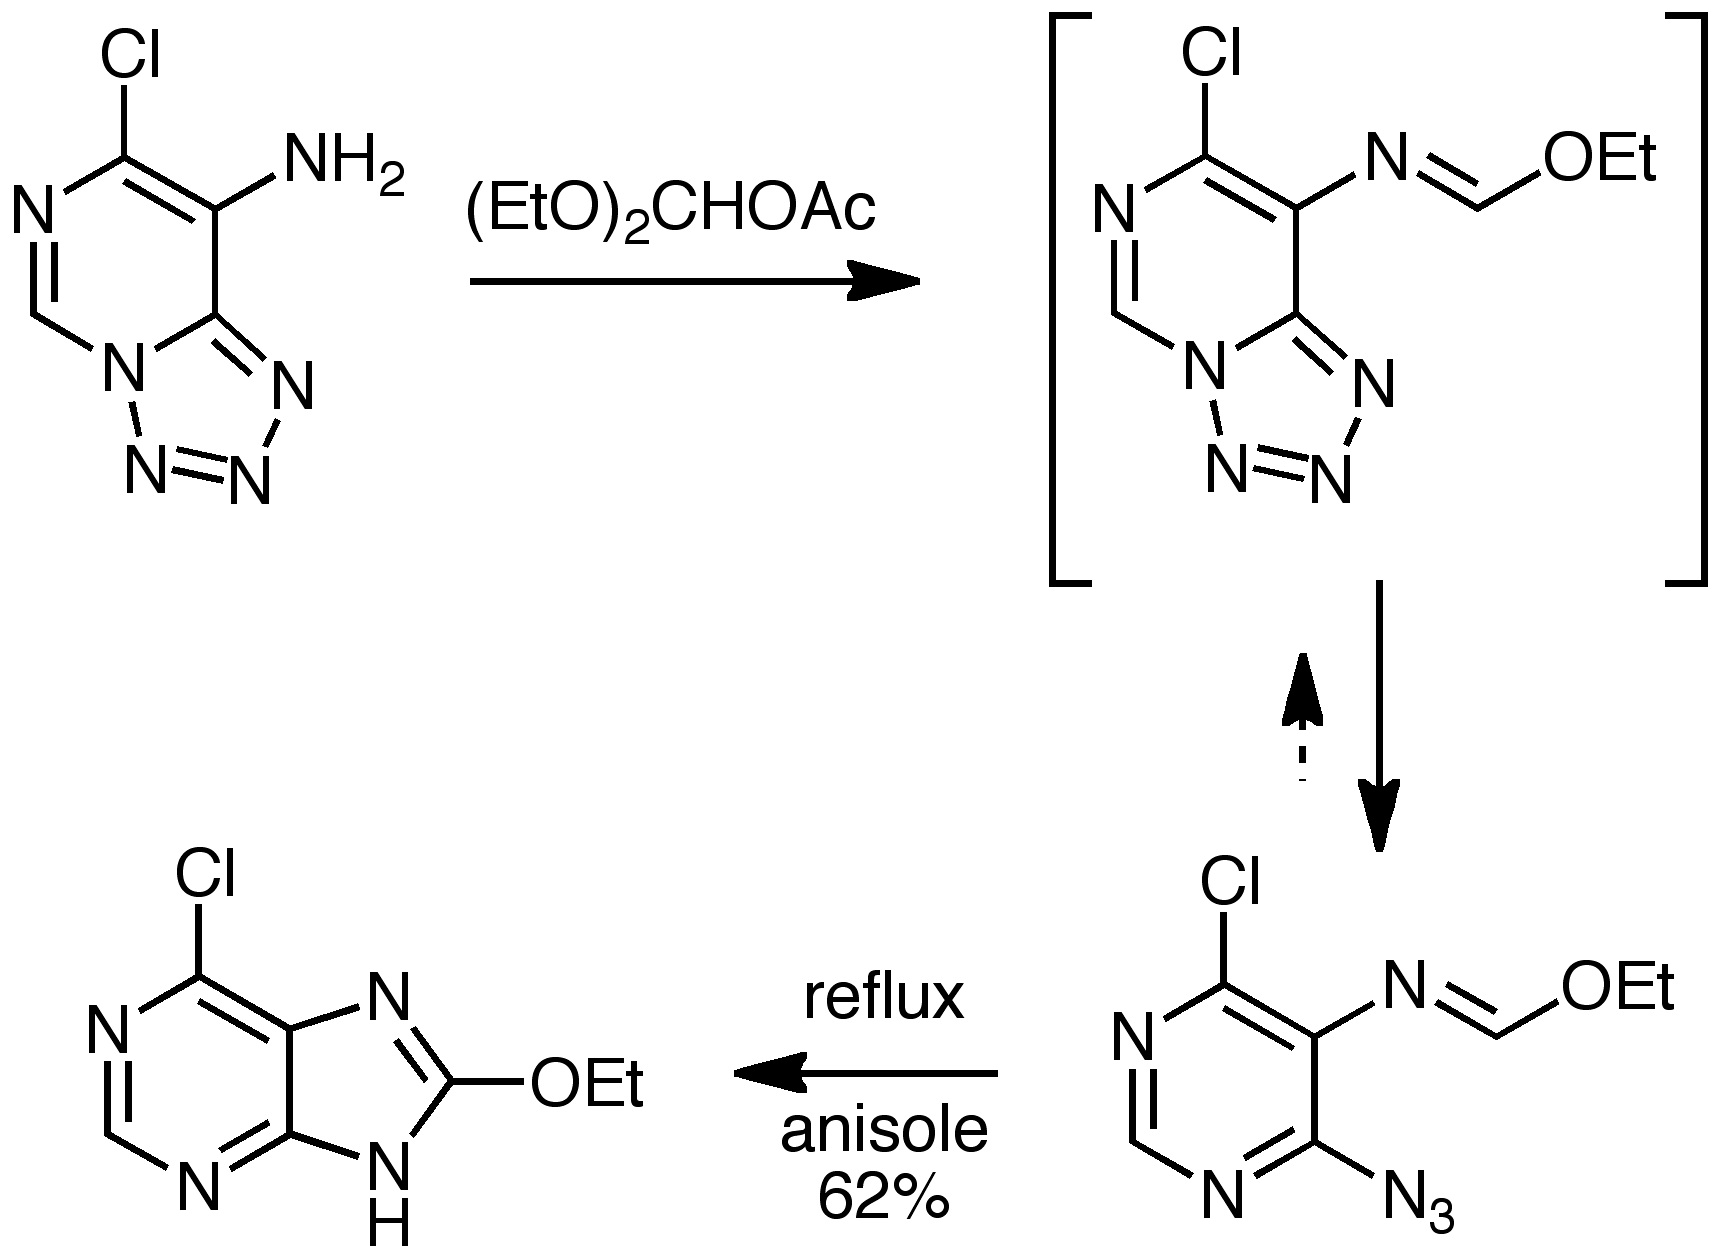 Tetrazole synthesis, Part II: Harnessing the tetrazole